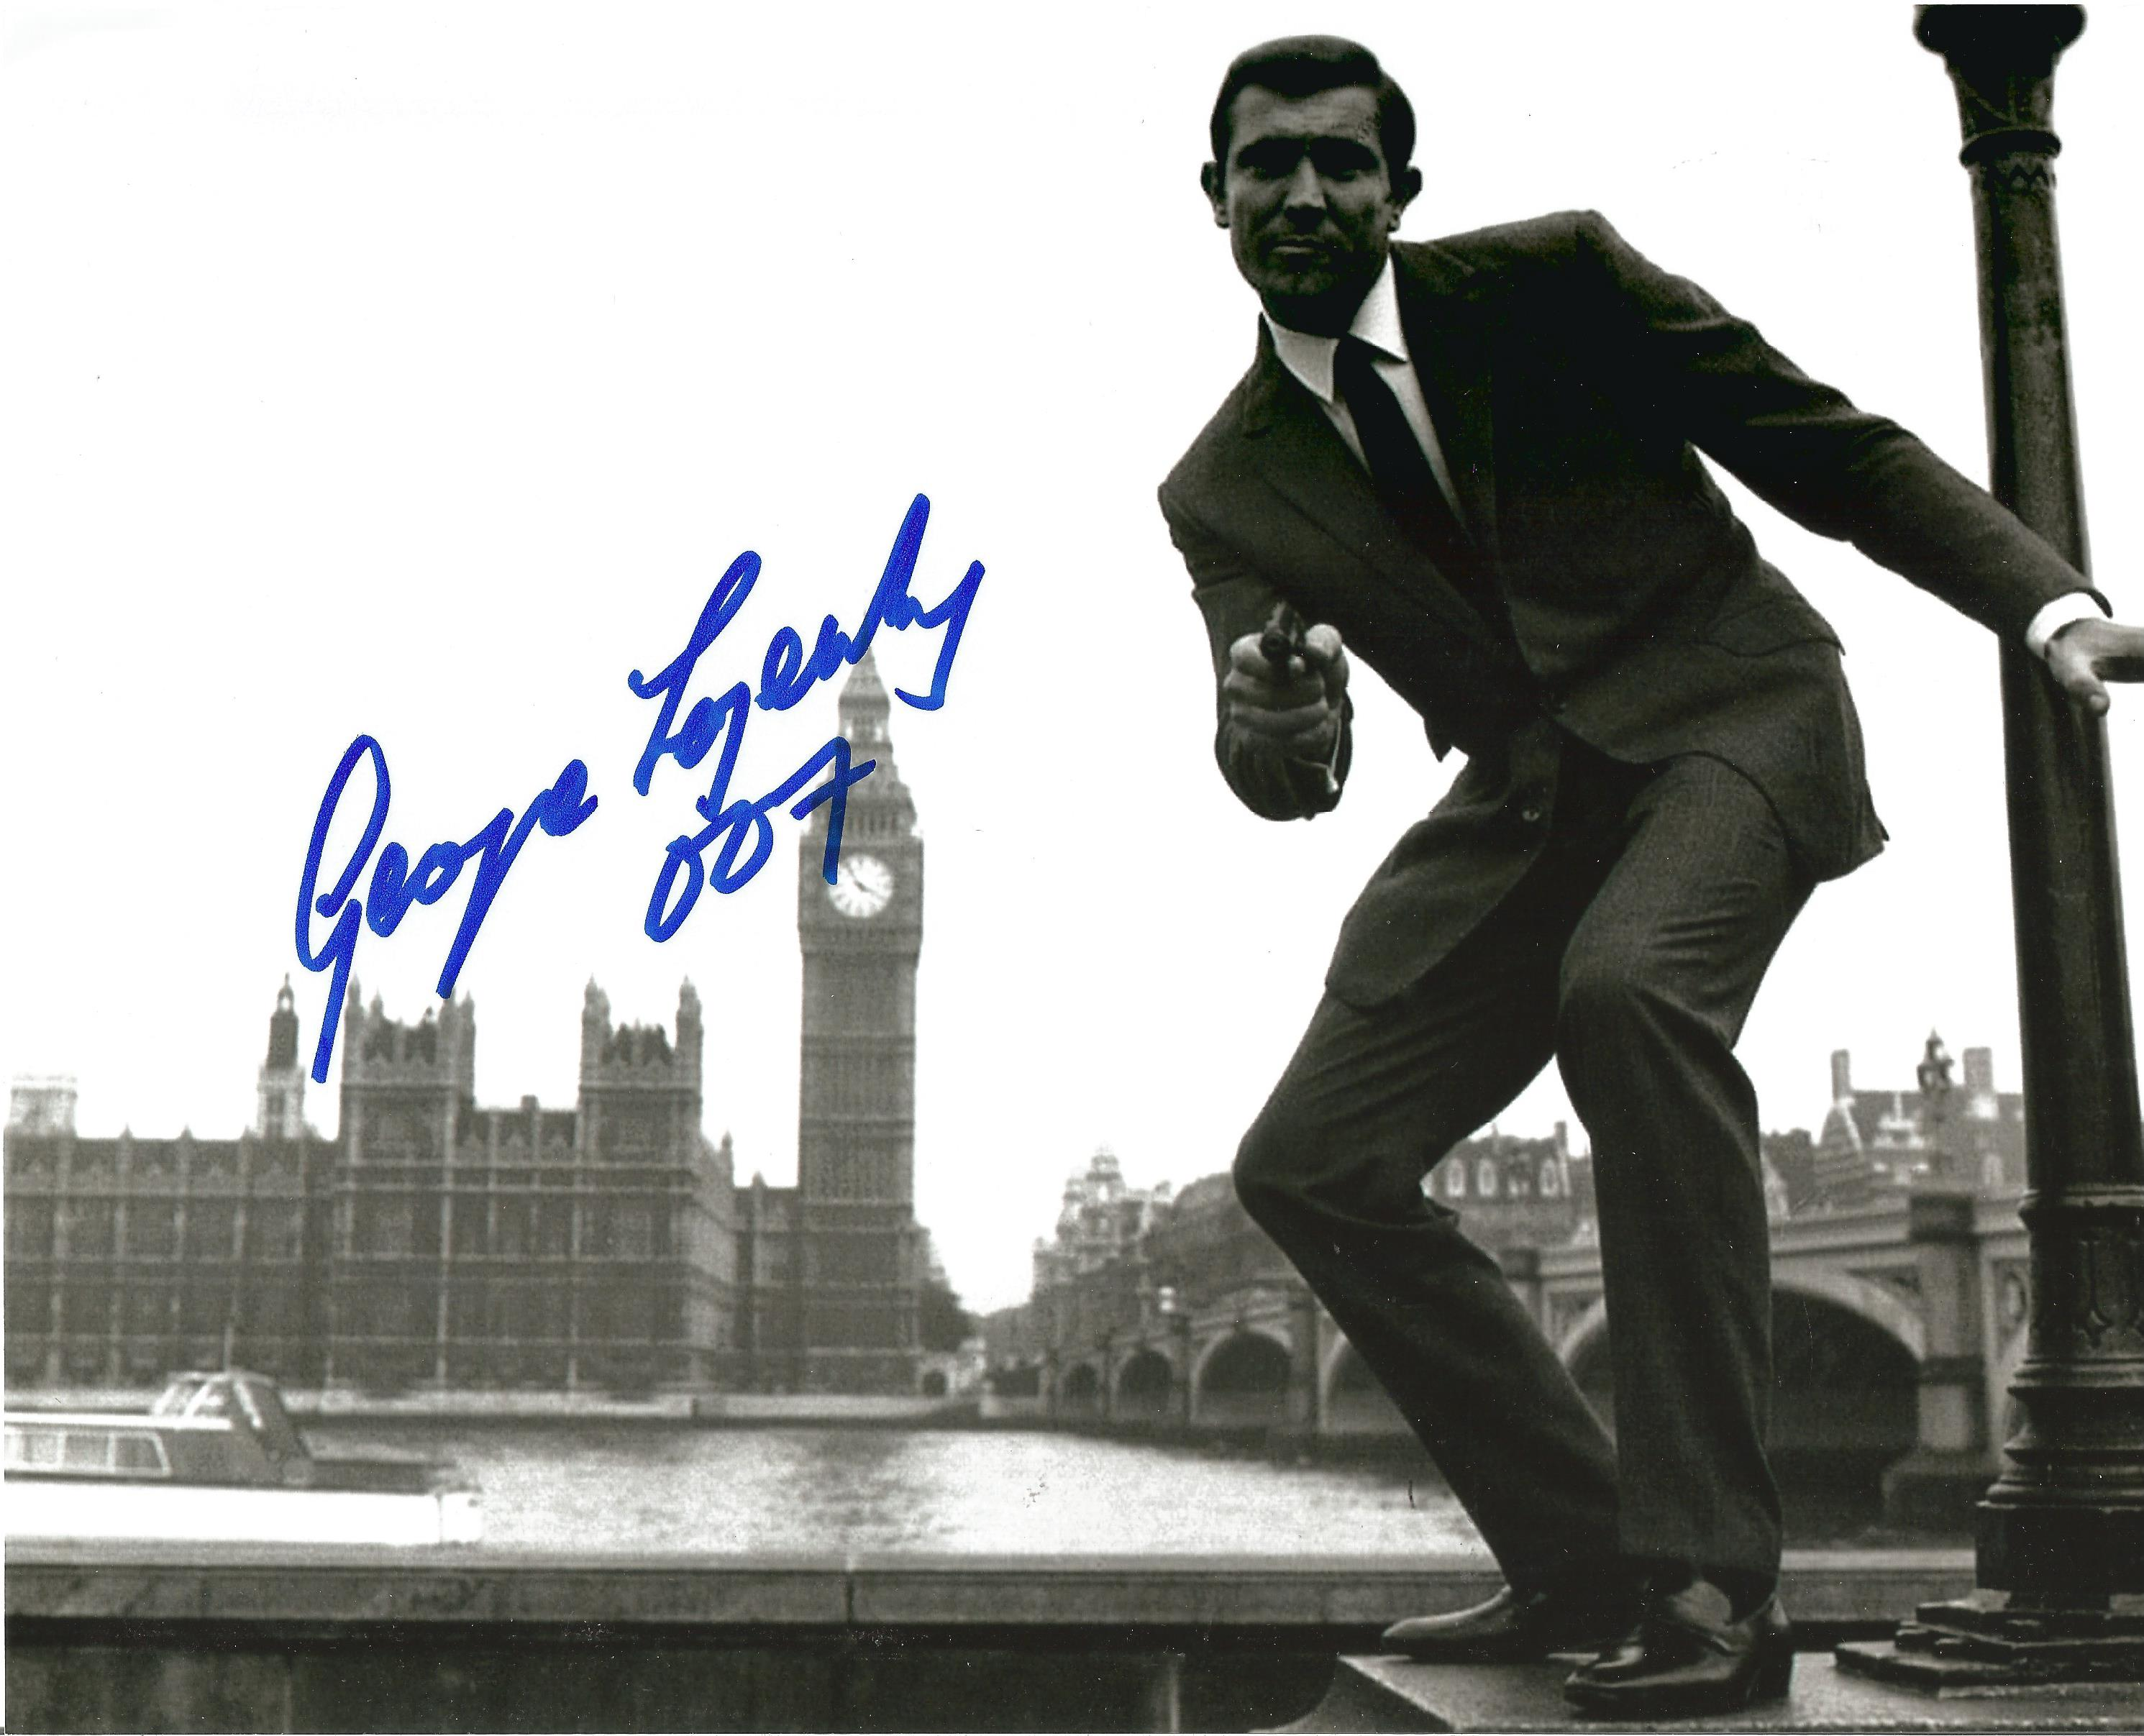 James Bond George Lazenby signed 10 x 8 inch b/w photo gum in hand with Houses of Parliament in